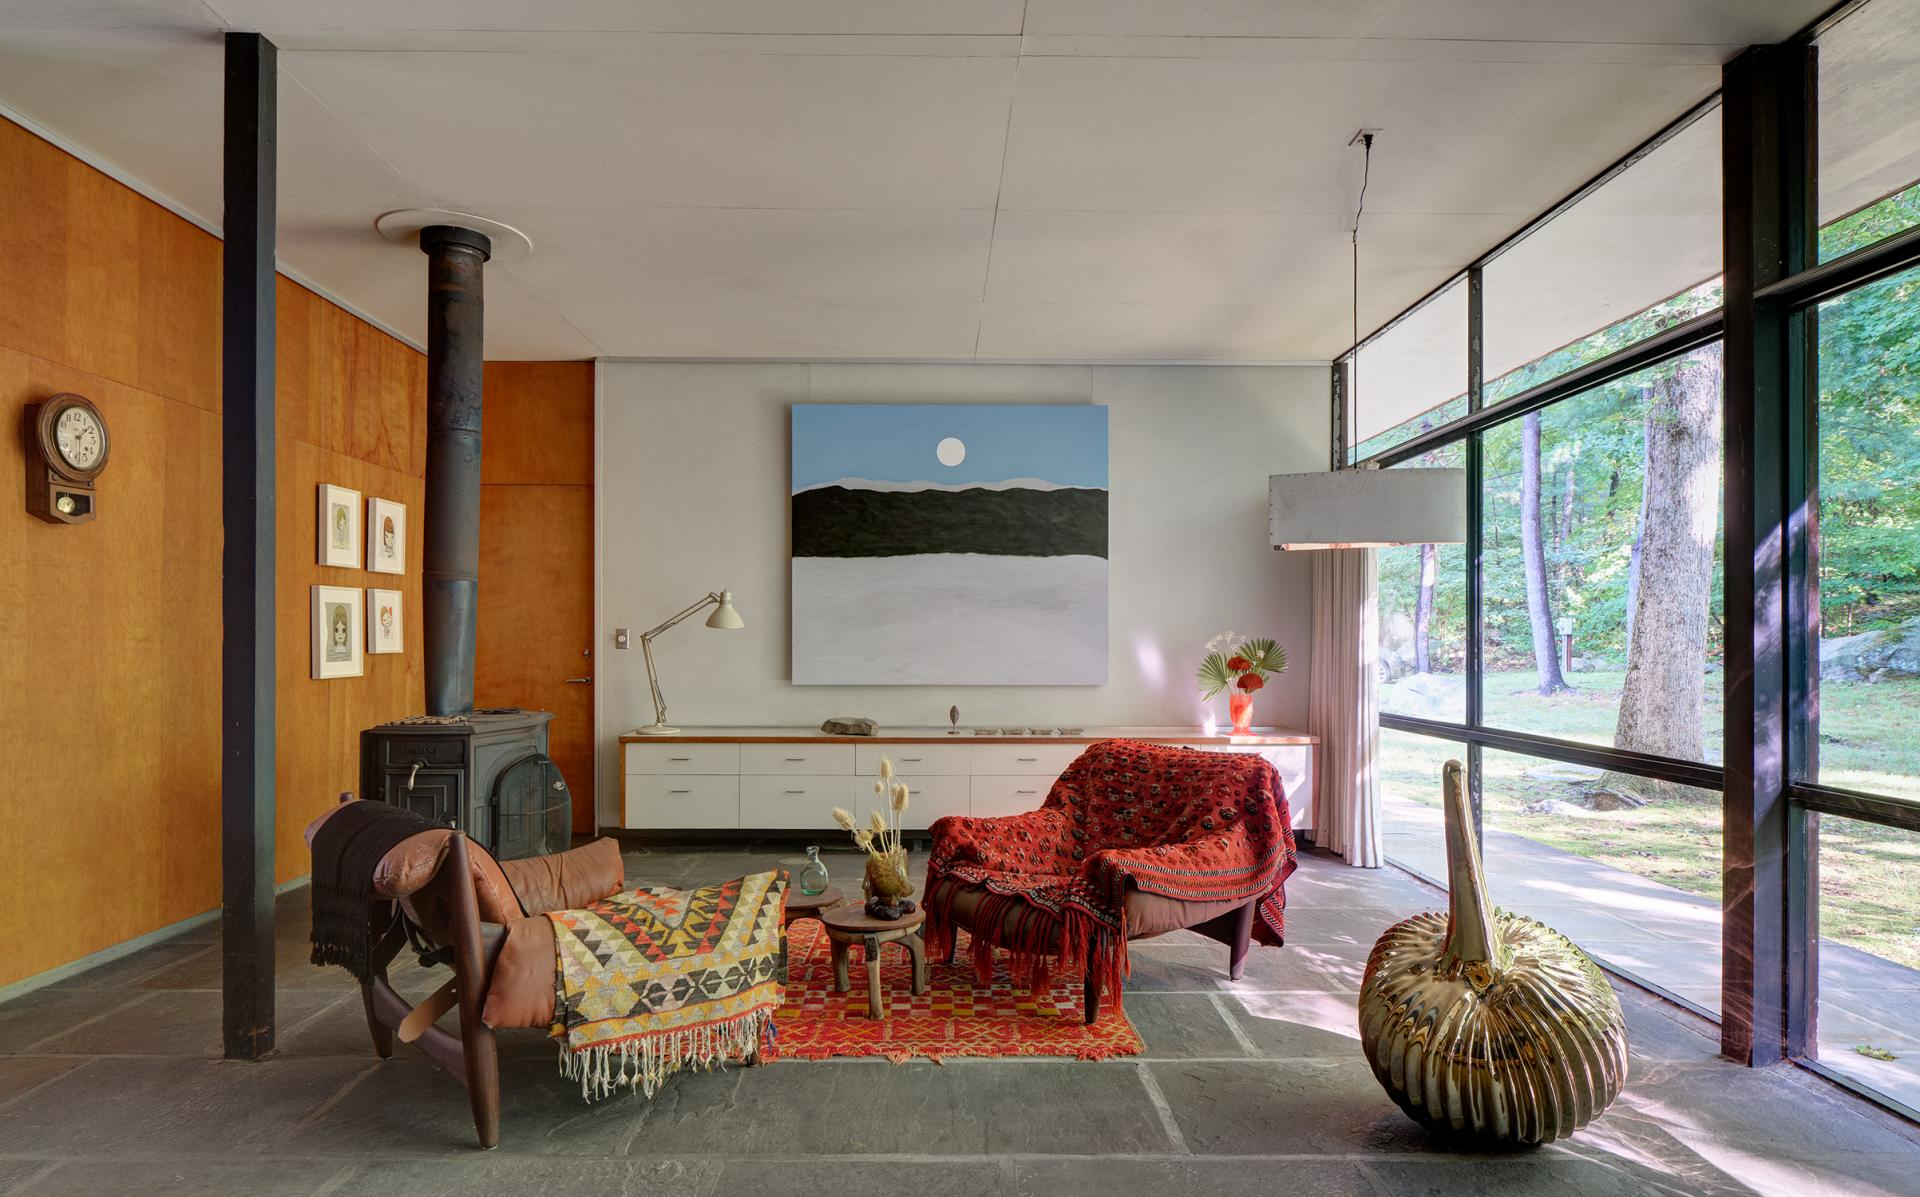 At The Noyes House: Blum & Poe, Mendes Wood DM and Object & Thing. The Noyes House, New Canaan, Connecticut. Photo by Michael Biondo. Works pictured [left to right]: Yoshitomo Nara, four drawings (2019); Patricia Leite, Entre Nuvens (2020); Gaetano Pesce, Table Top Vase (2020); Green River Project LLC, Airline Pendant (2020); Gaetano Pesce, Drip Vase (2020); Alma Allen, Not Yet Titled (2020).